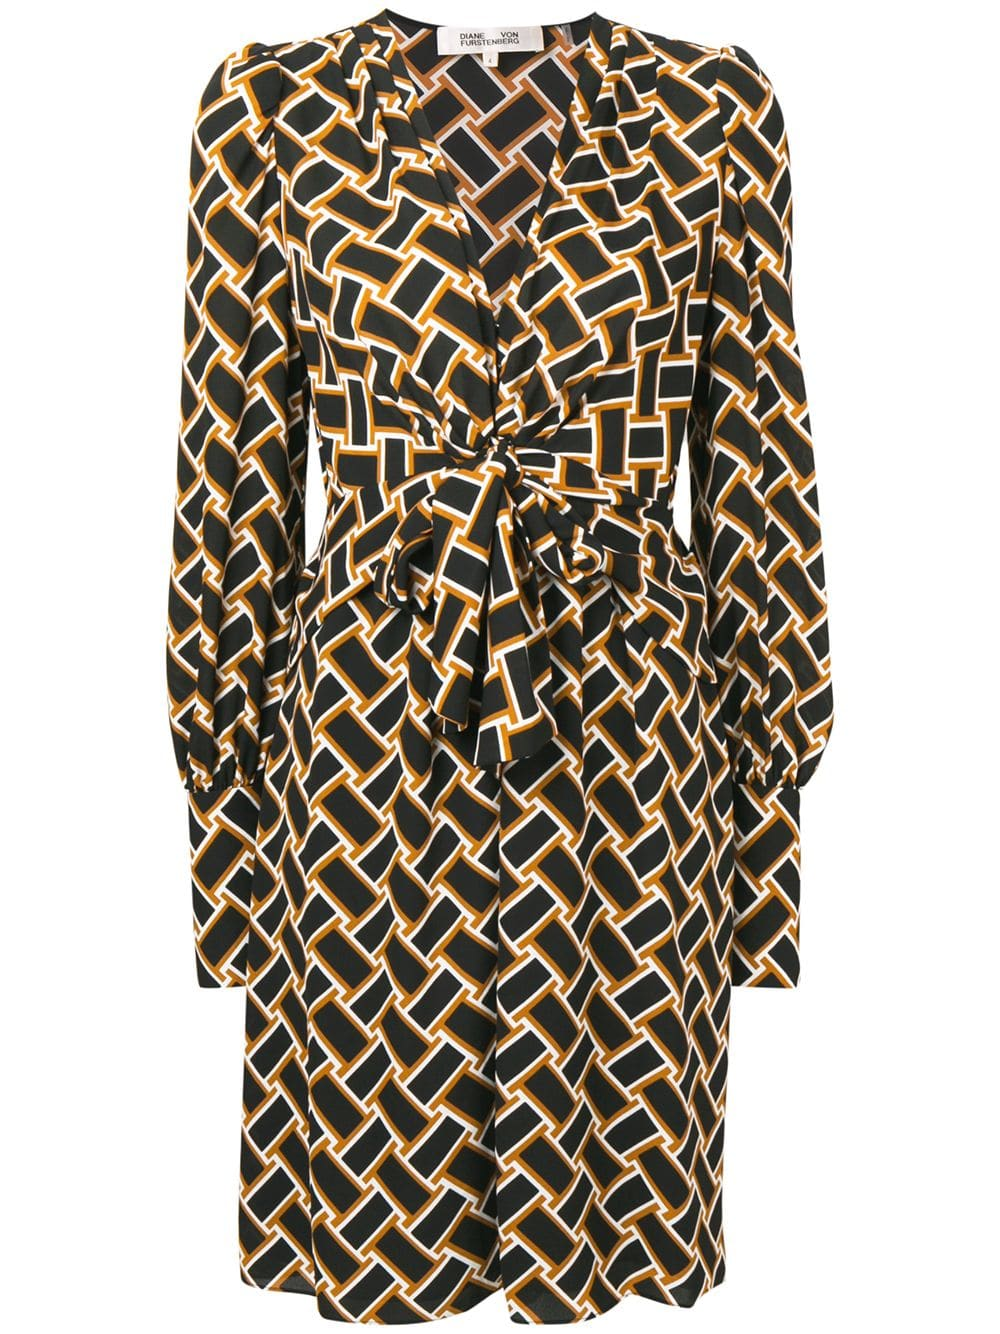 80798d4a dvf-diane-von-furstenberg-ruched-detail-dress -black-farfetch-com-photo.jpg?1548399185